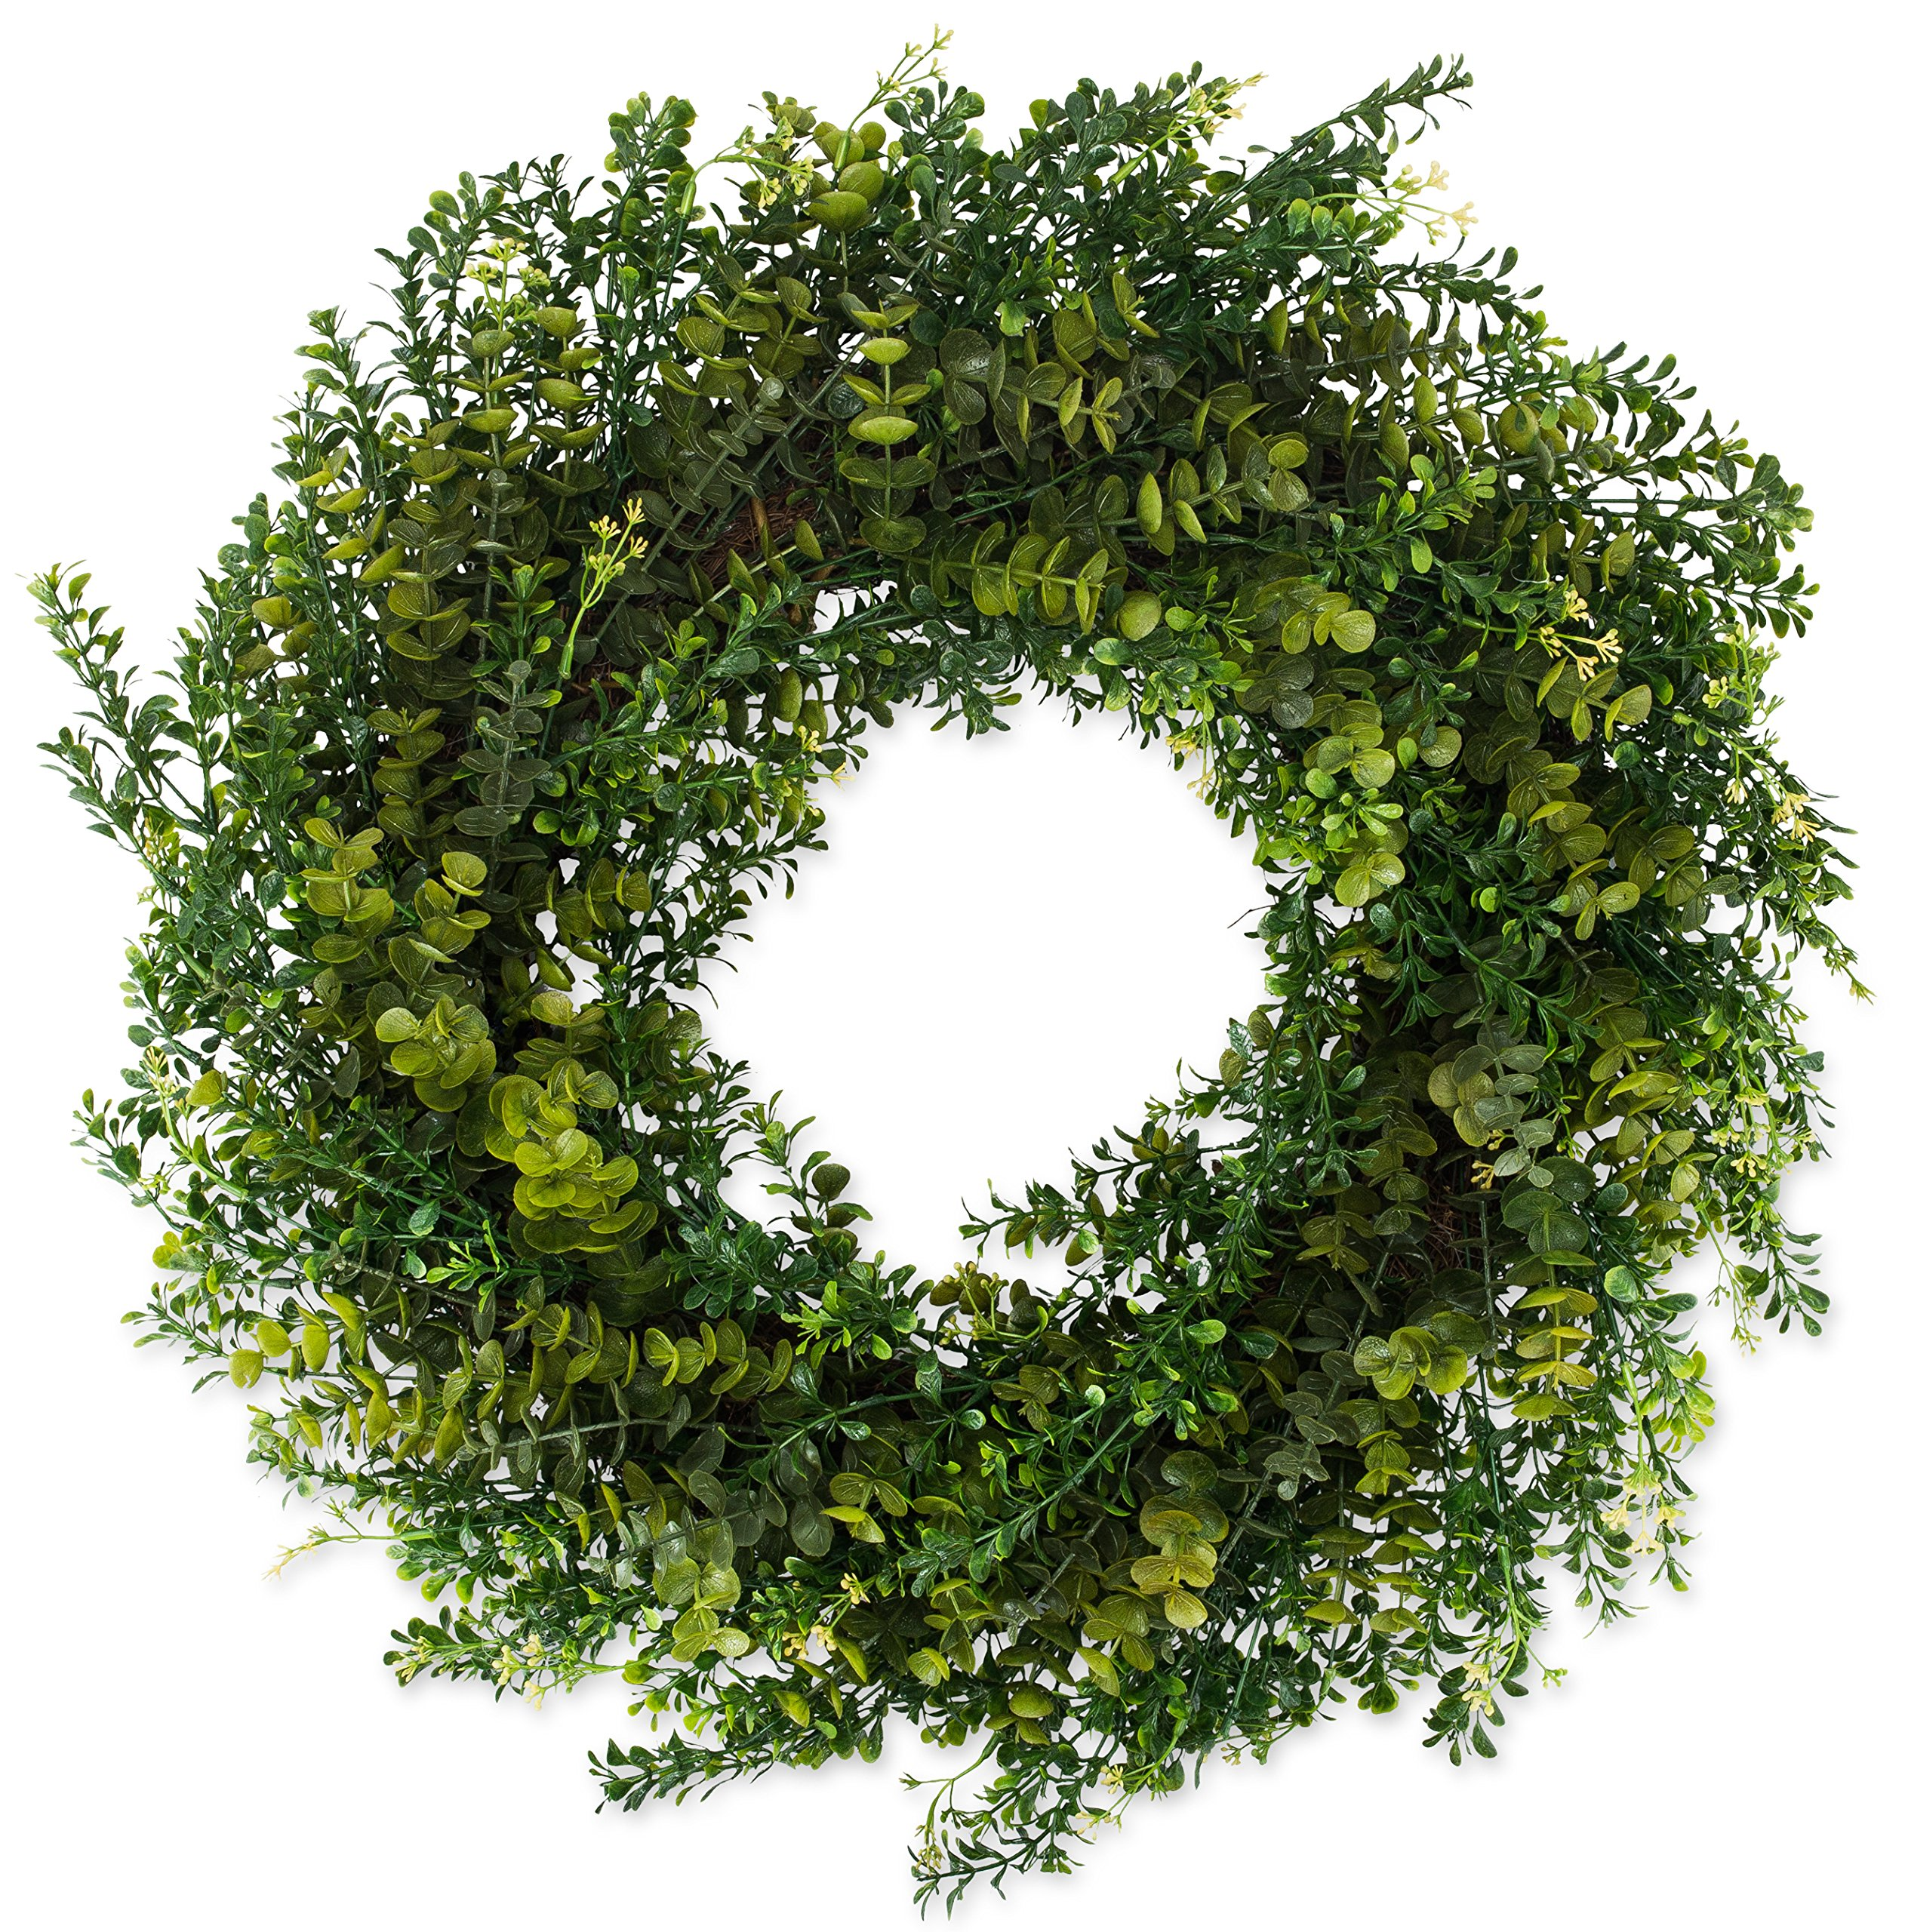 The-Wreath-Depot-Arbor-Artificial-Boxwood-Wreath-22-Inch-Year-Round-Full-Green-Wreath-Approved-for-Outdoor-Display-Beautiful-Gift-Box-Included